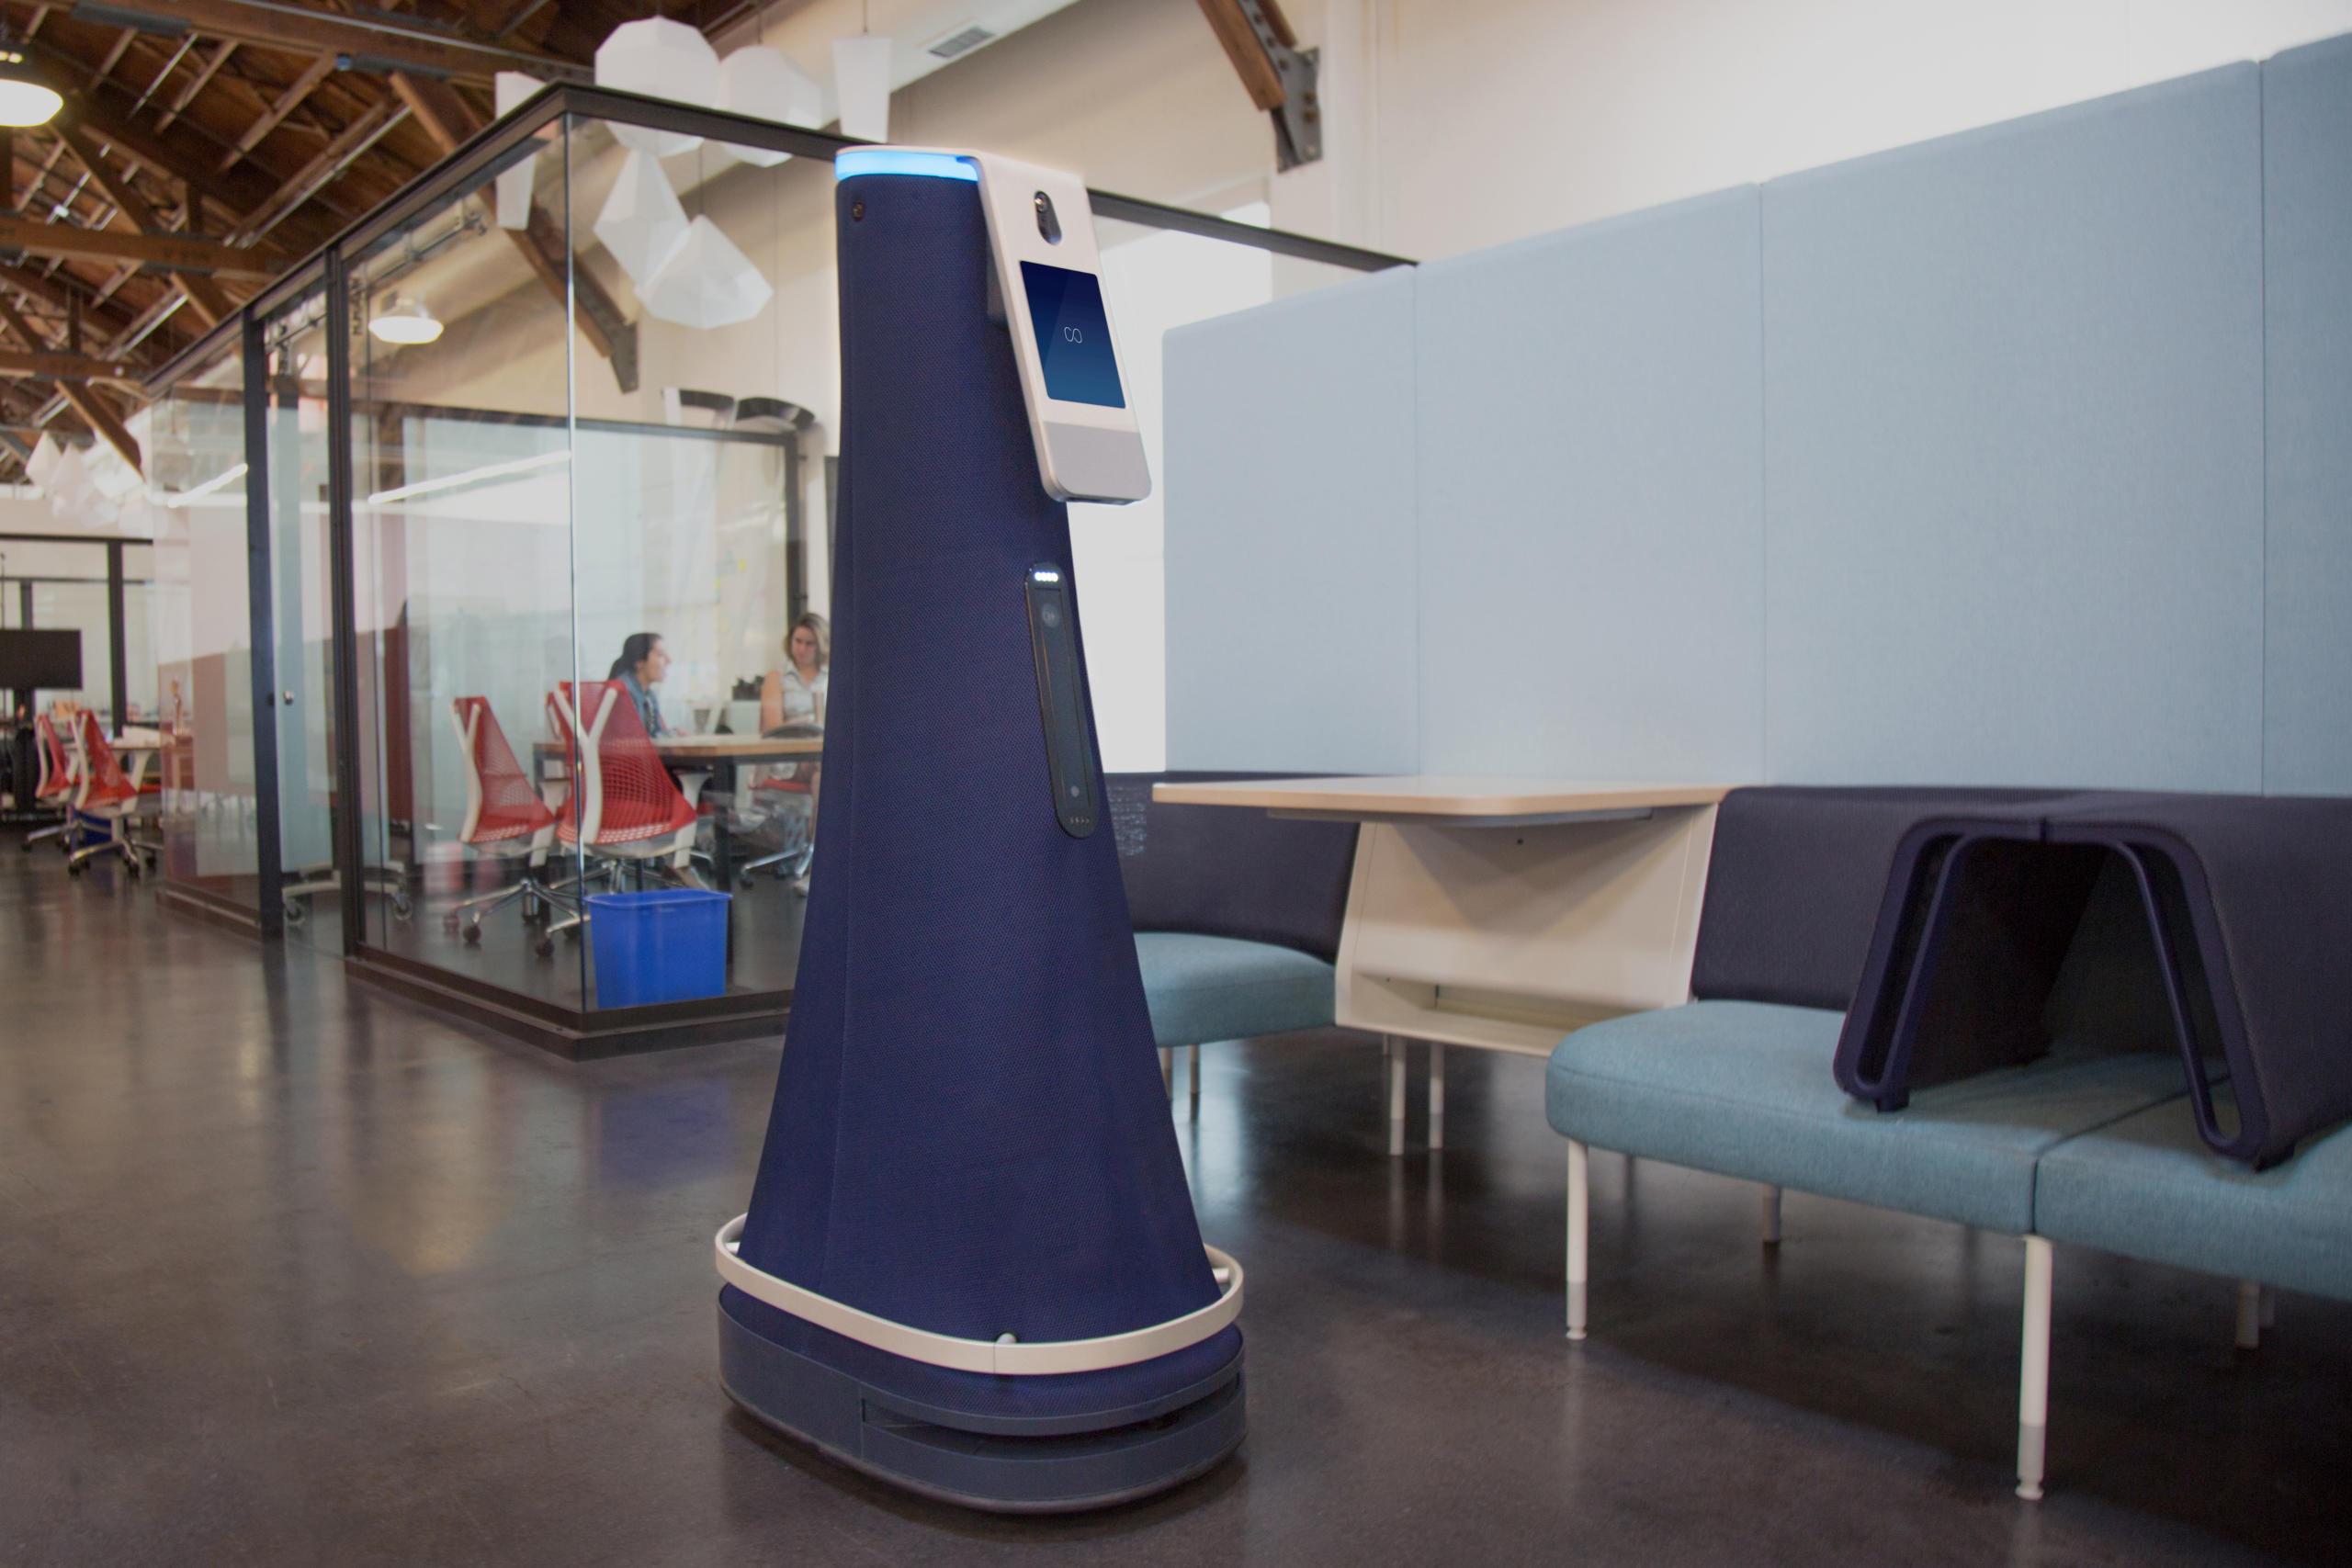 'The robot will see you now': Artificial intelligence in COVID-19 health care